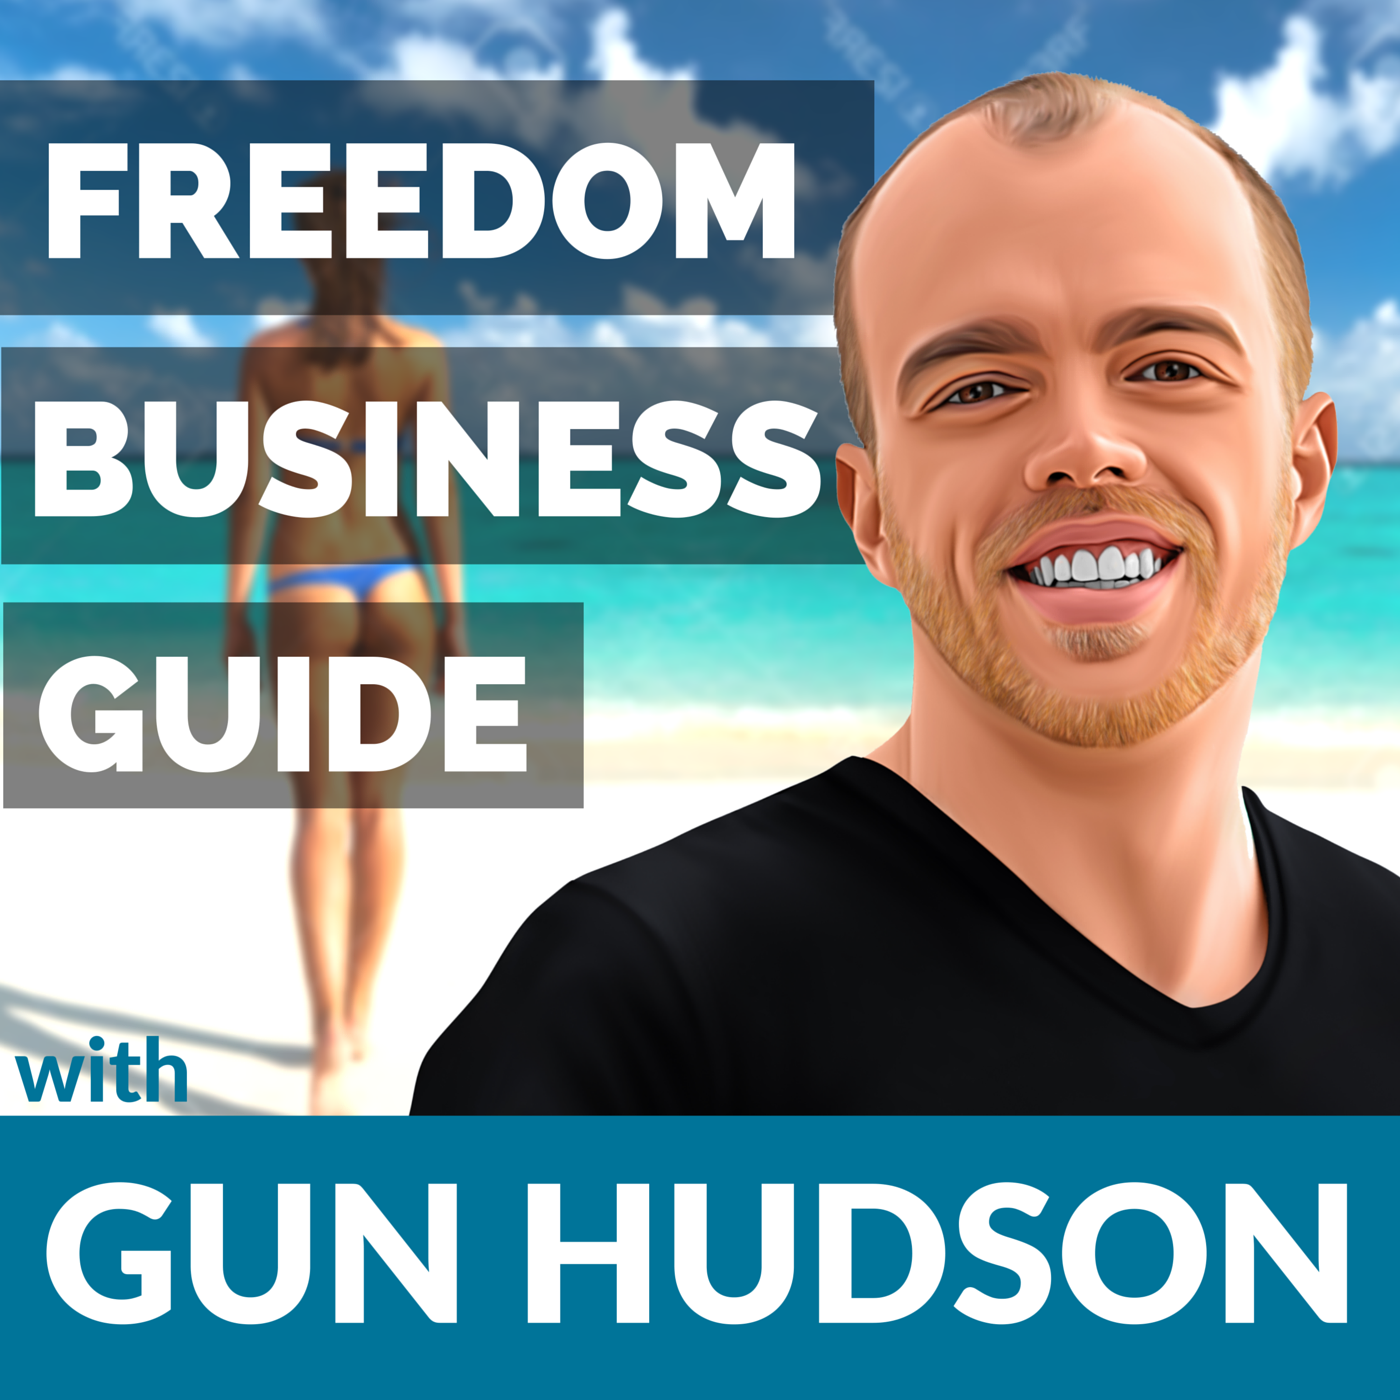 Freedom Business Guide with Gun Hudson | Lifestyle Design | Internet Business | World Travel